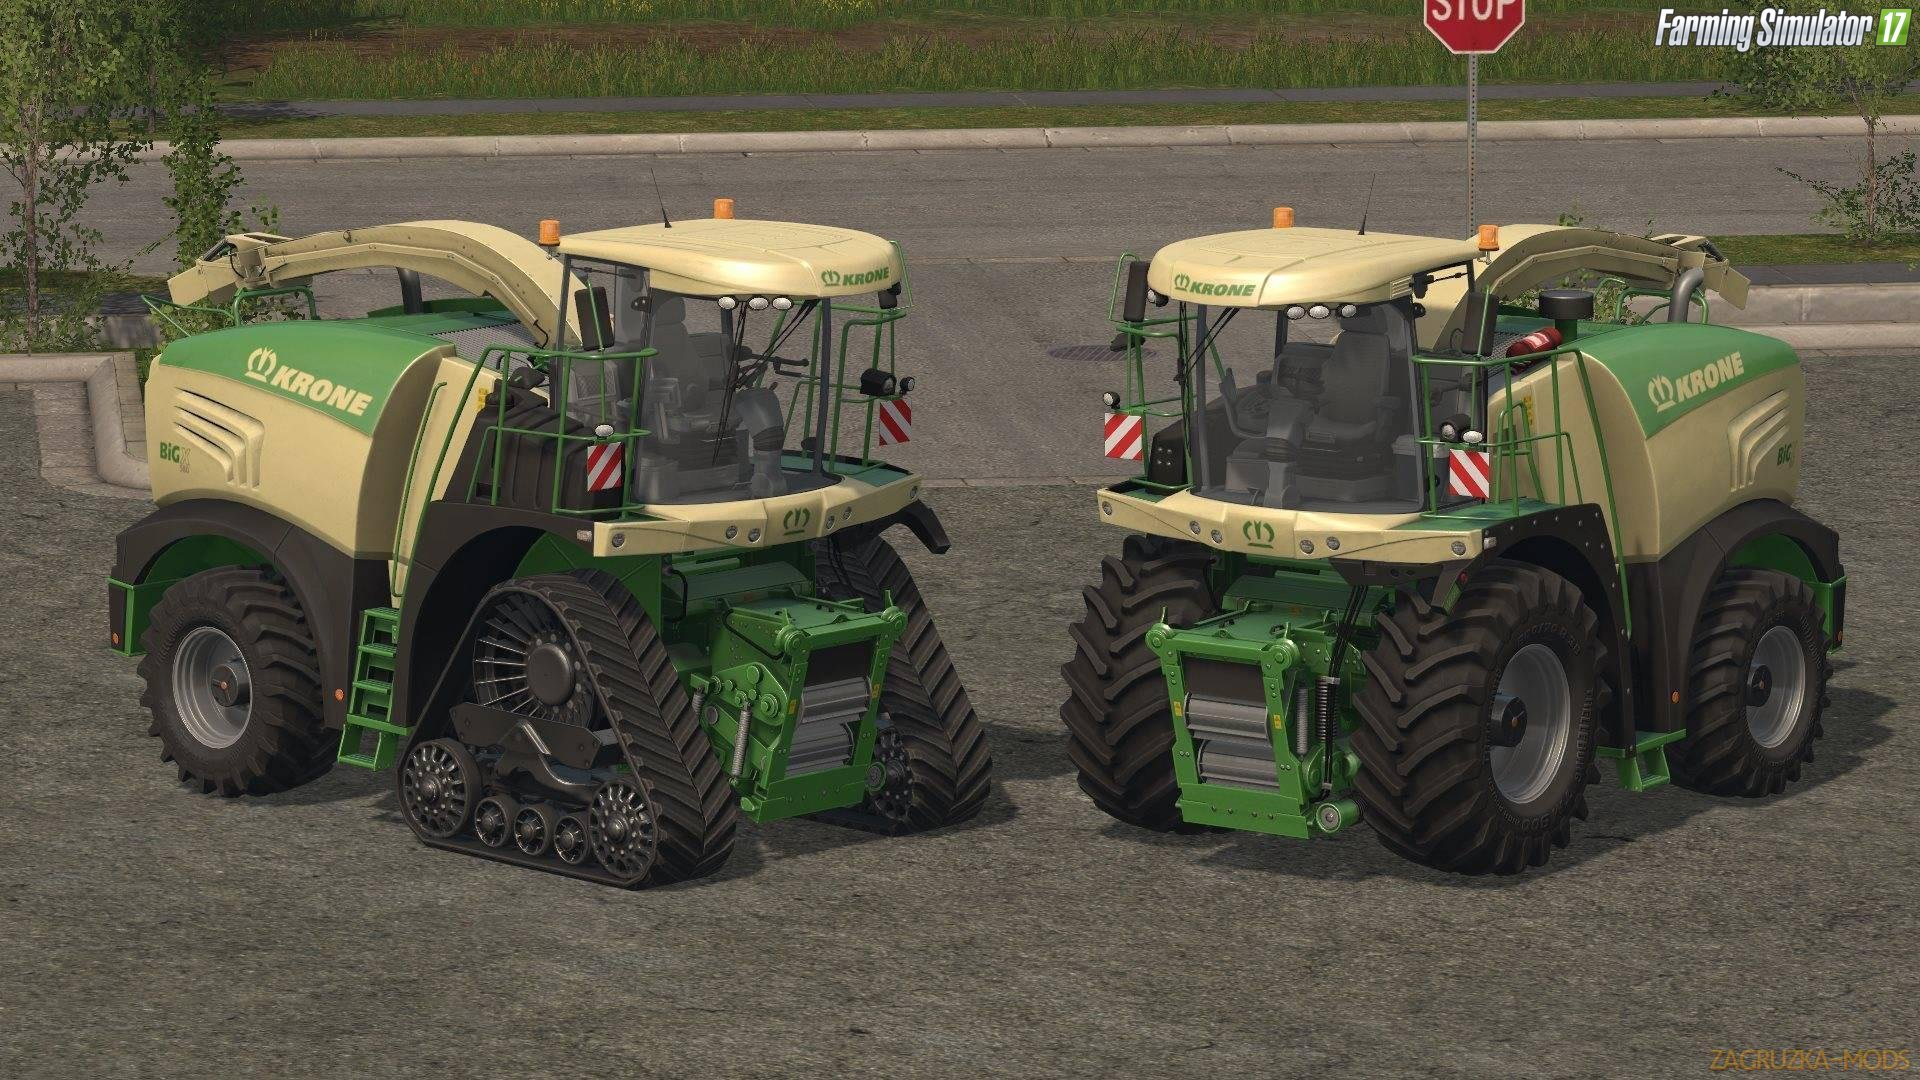 Krone BigX 580 Crawler v1.0 for Fs17